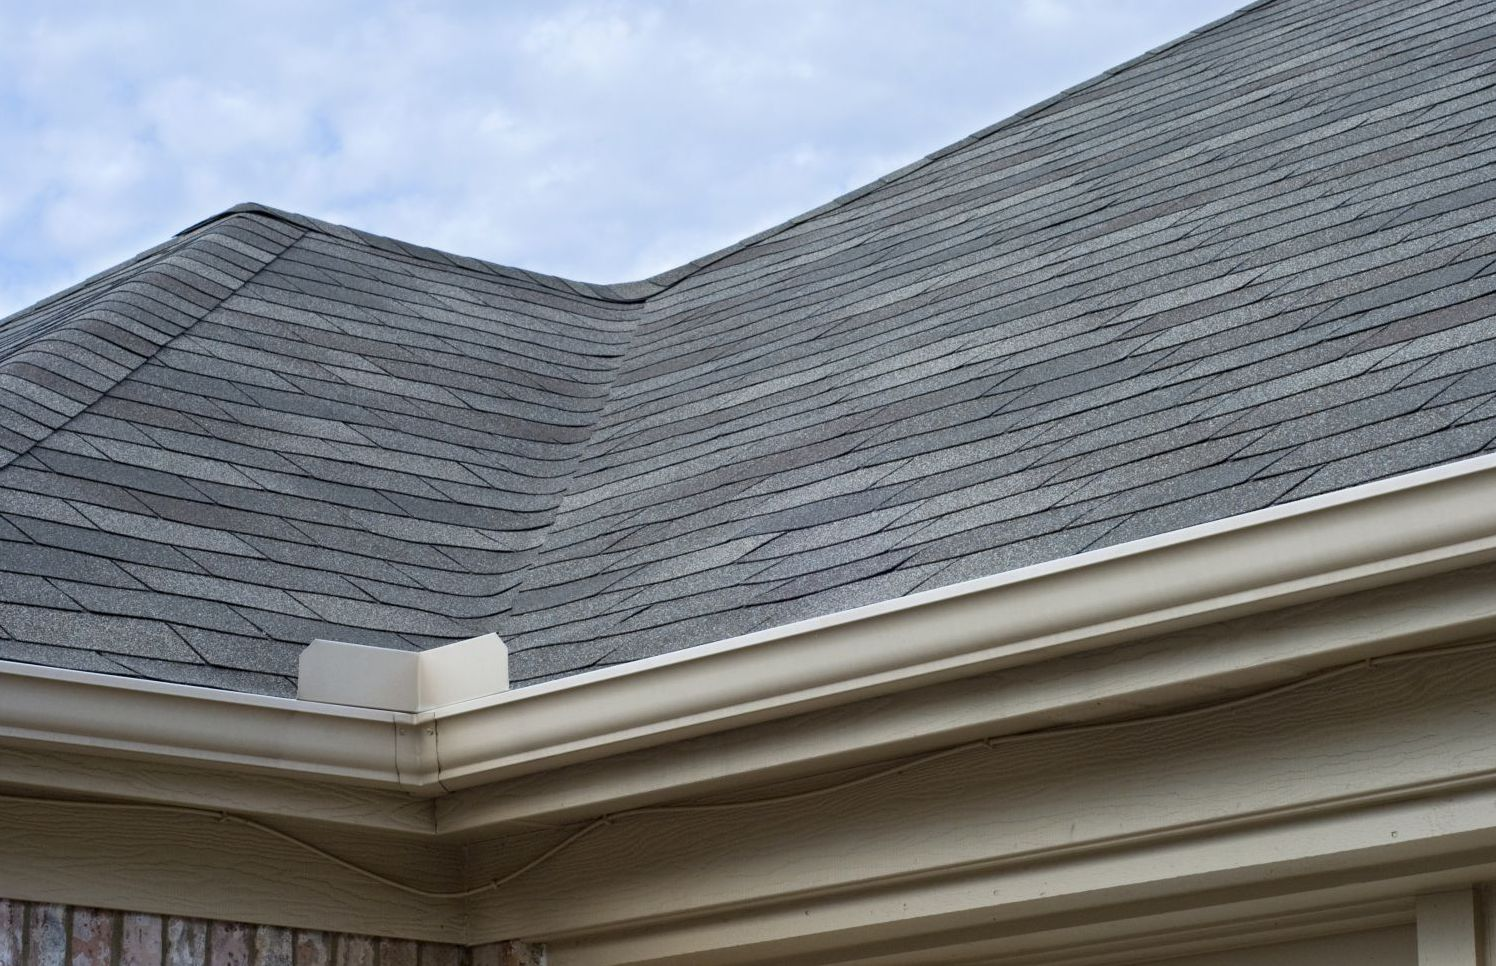 A new gutter and roof system in Bangor, WI